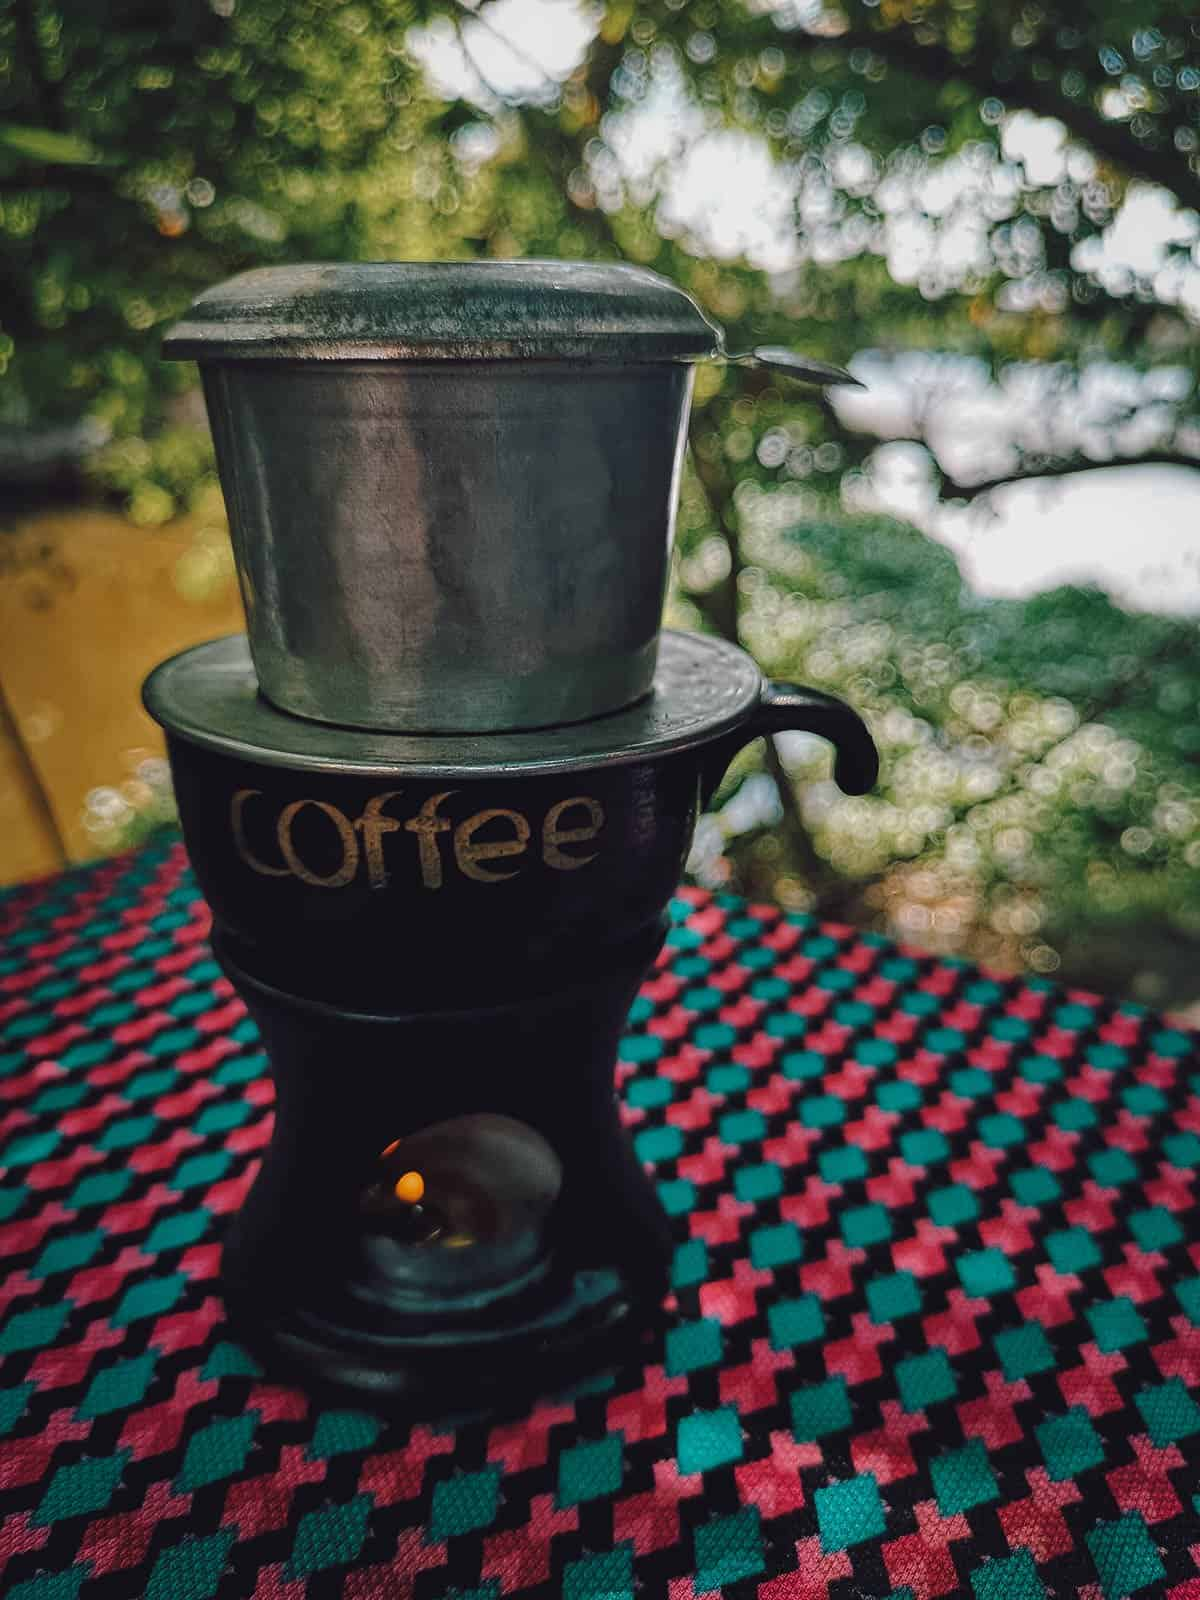 Drip coffee by the river